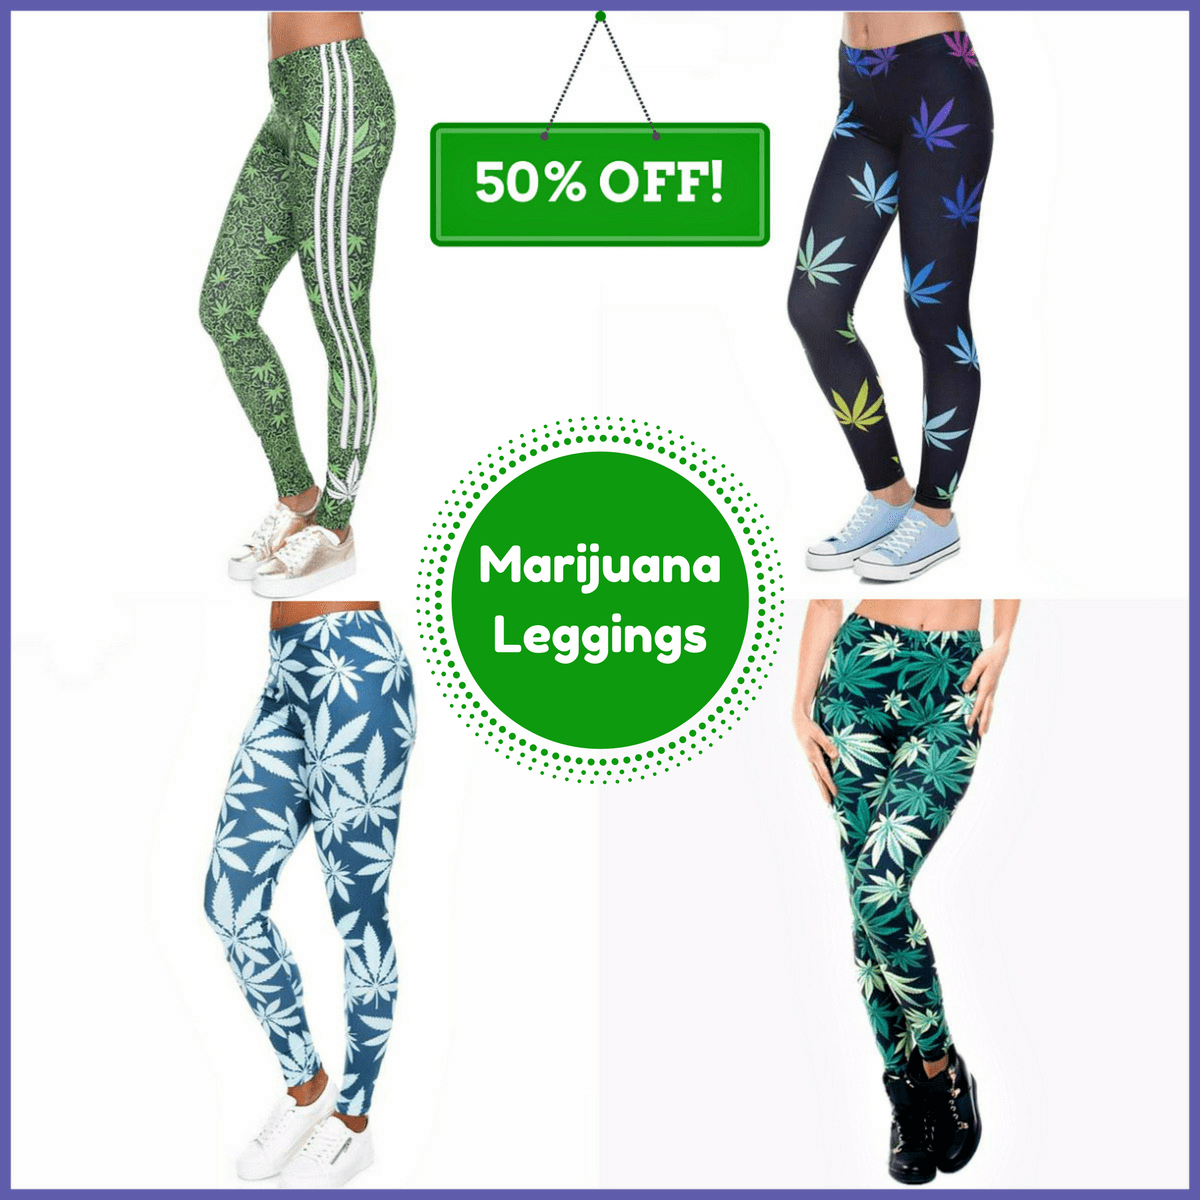 Marijúana Leaf Leggings - Plus Minus Co.